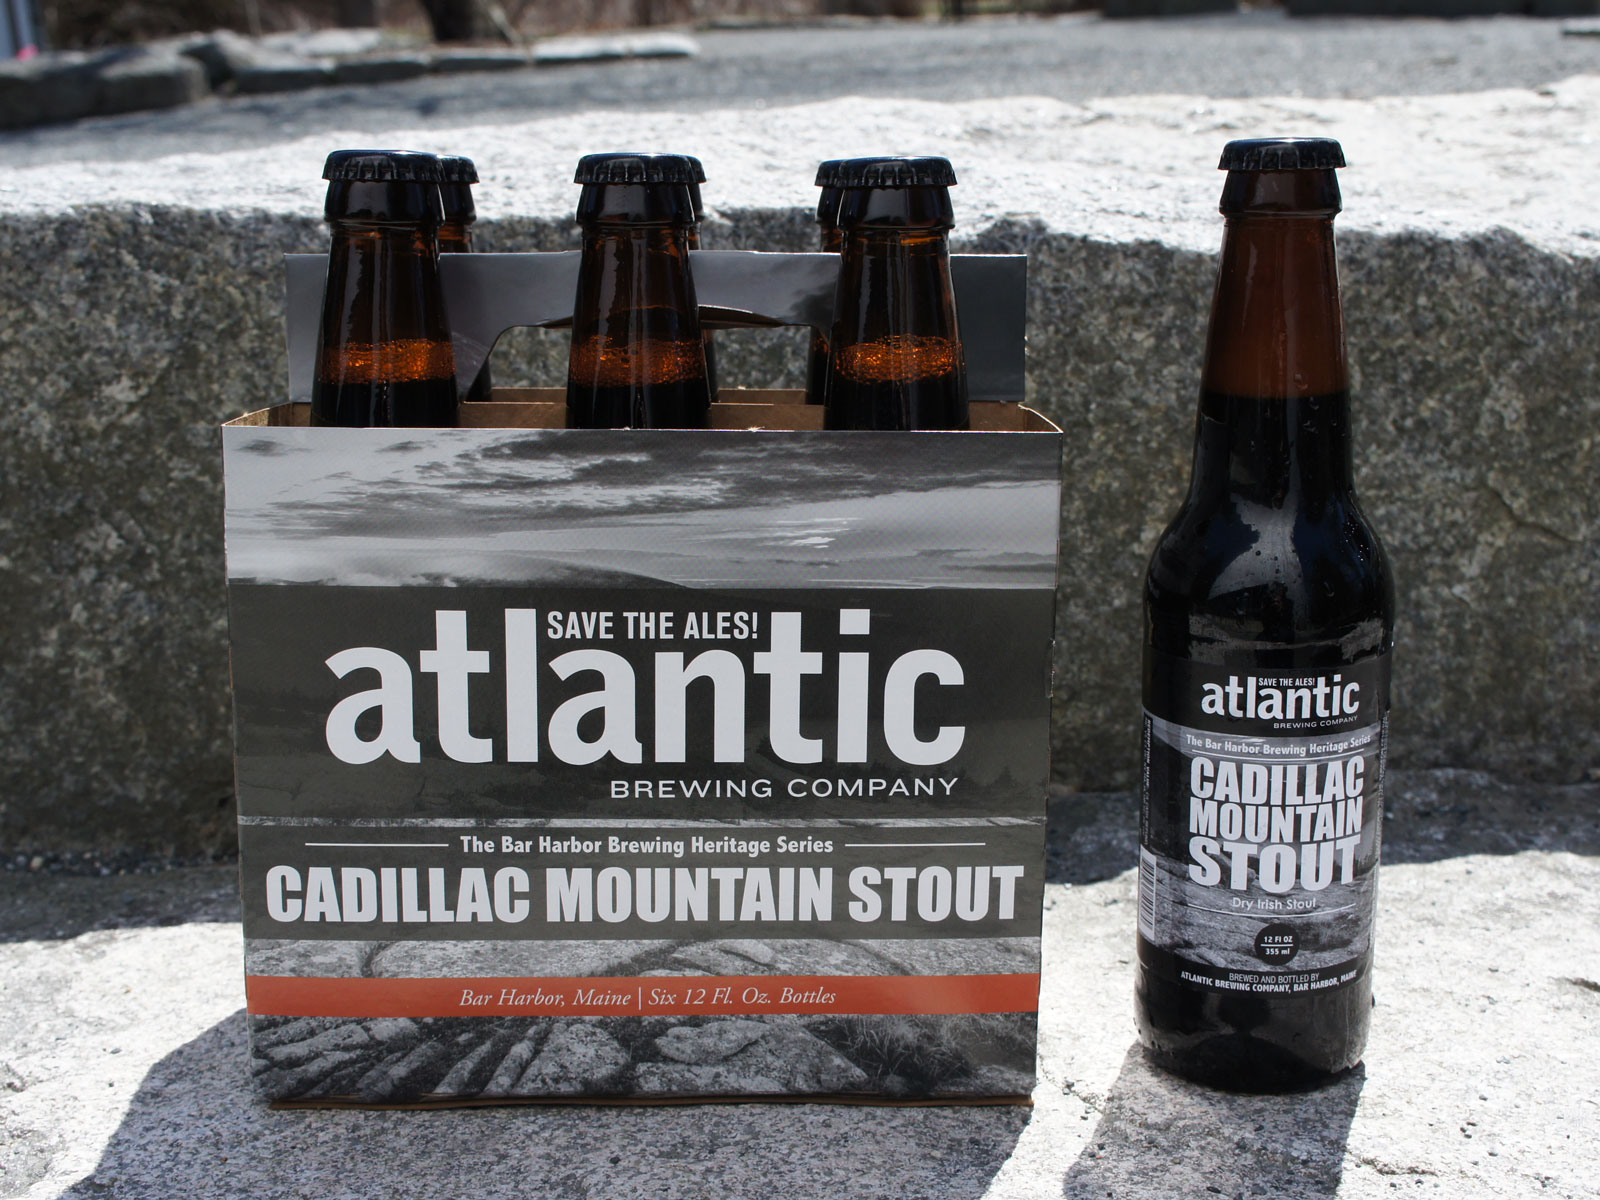 Atlantic Brewing Company Cadillac Mountain Stout